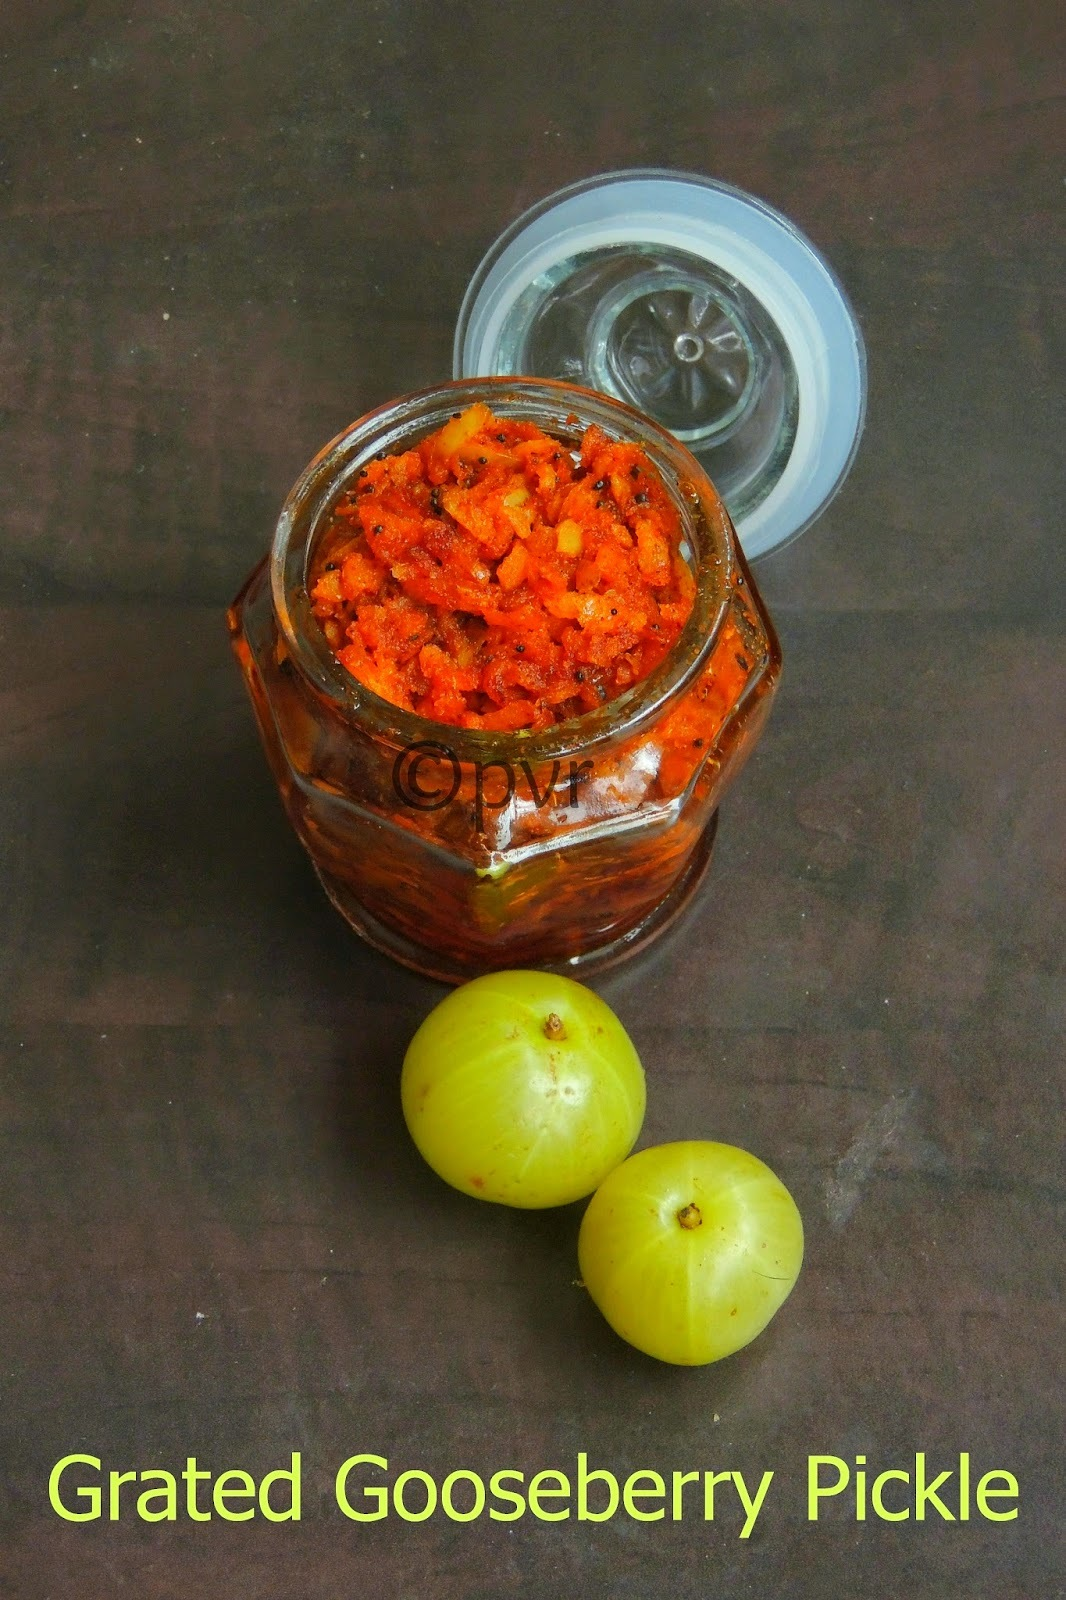 Grated Gooseberry Pickle/Instant Grated Amla Pickle